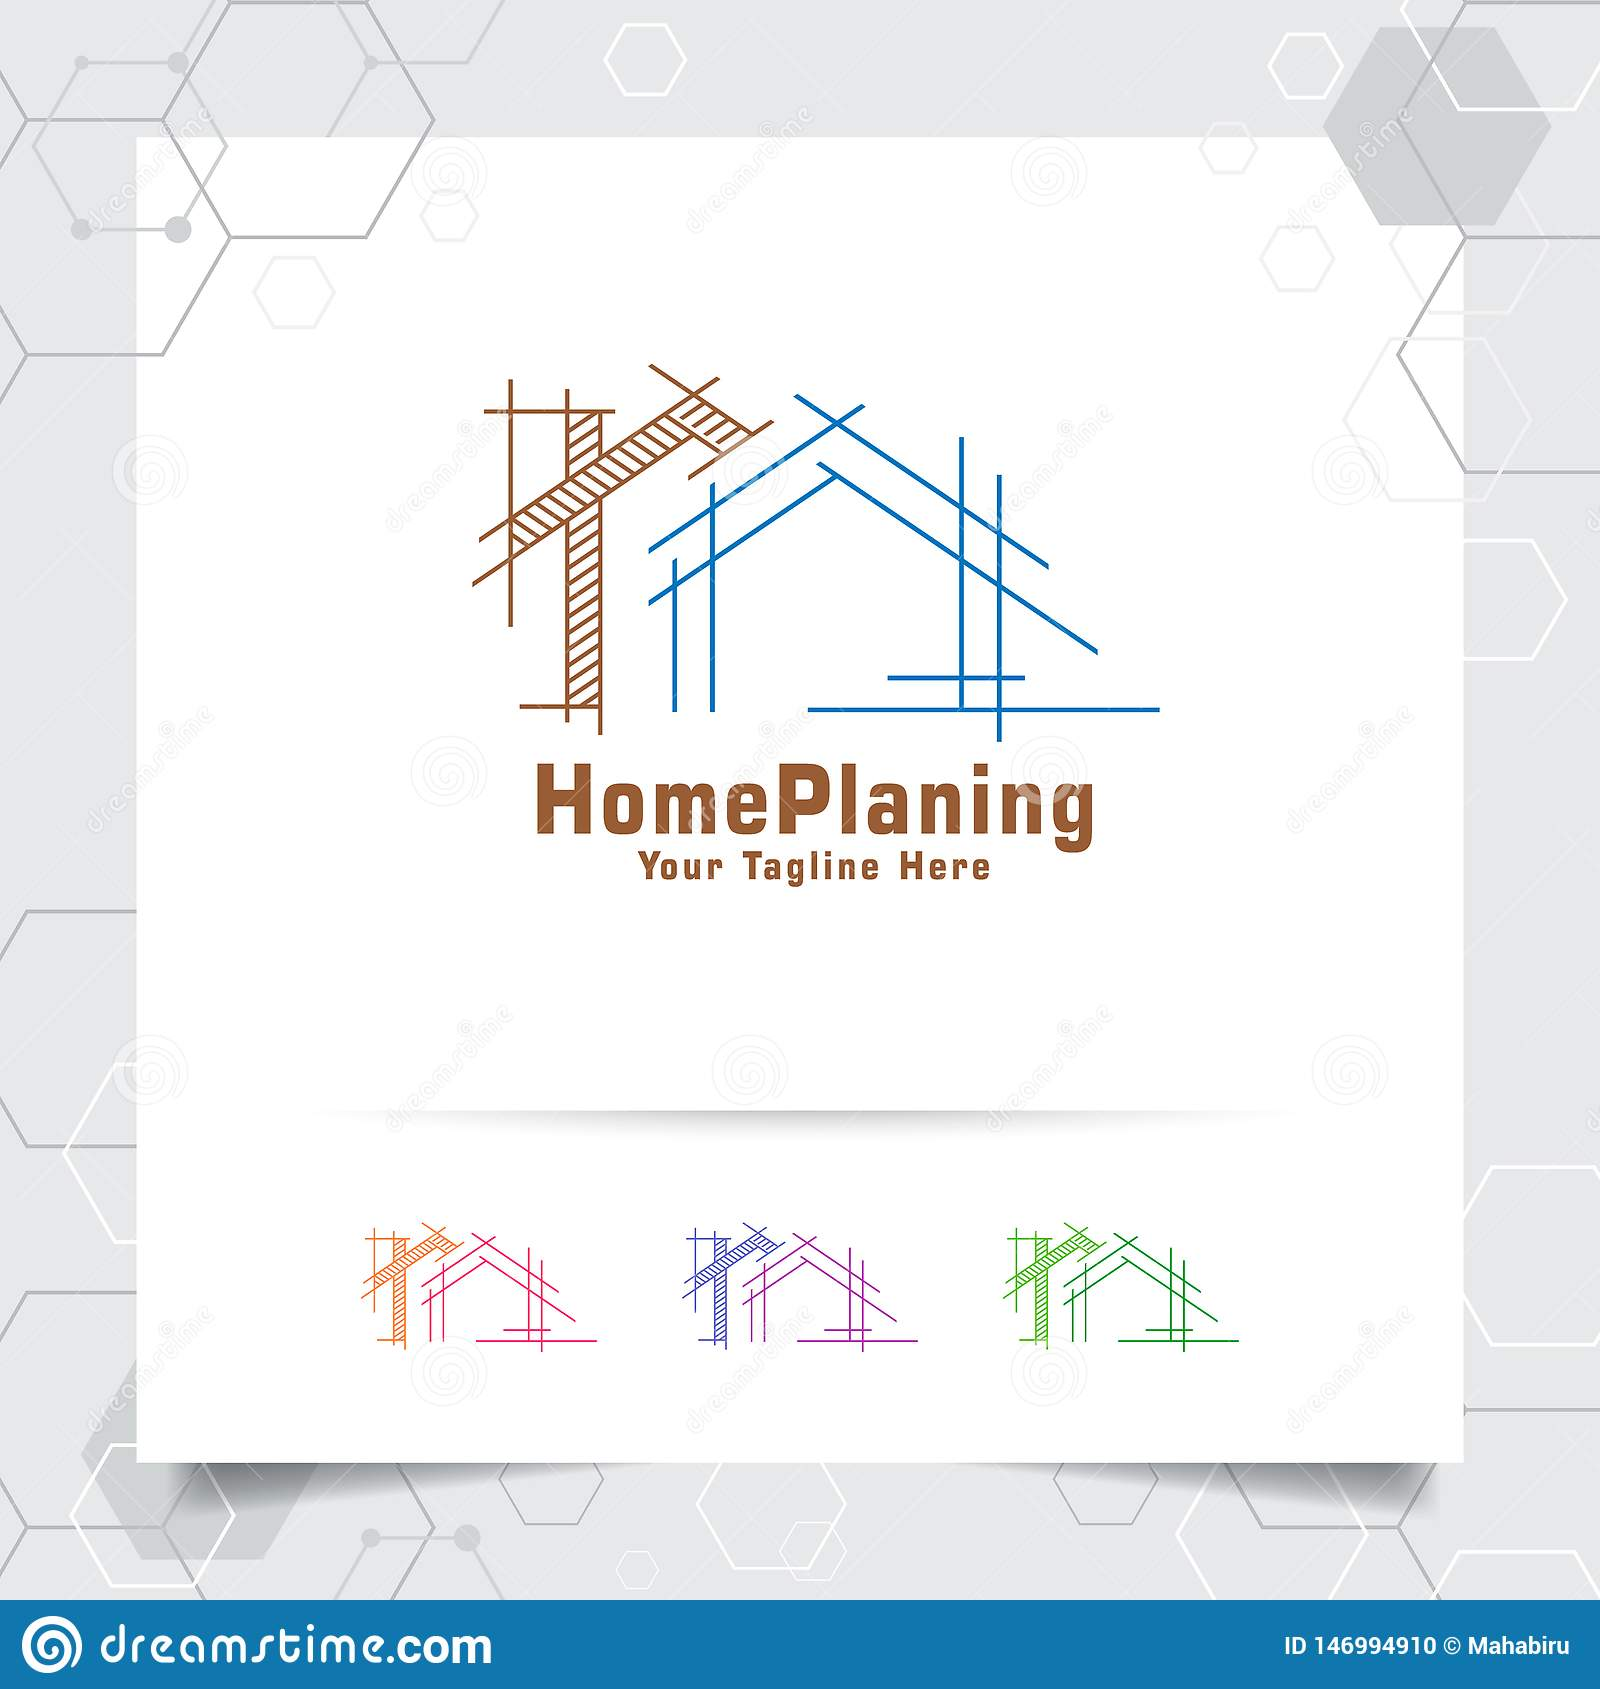 Architect Construction Logo Design Concept Of Architectural